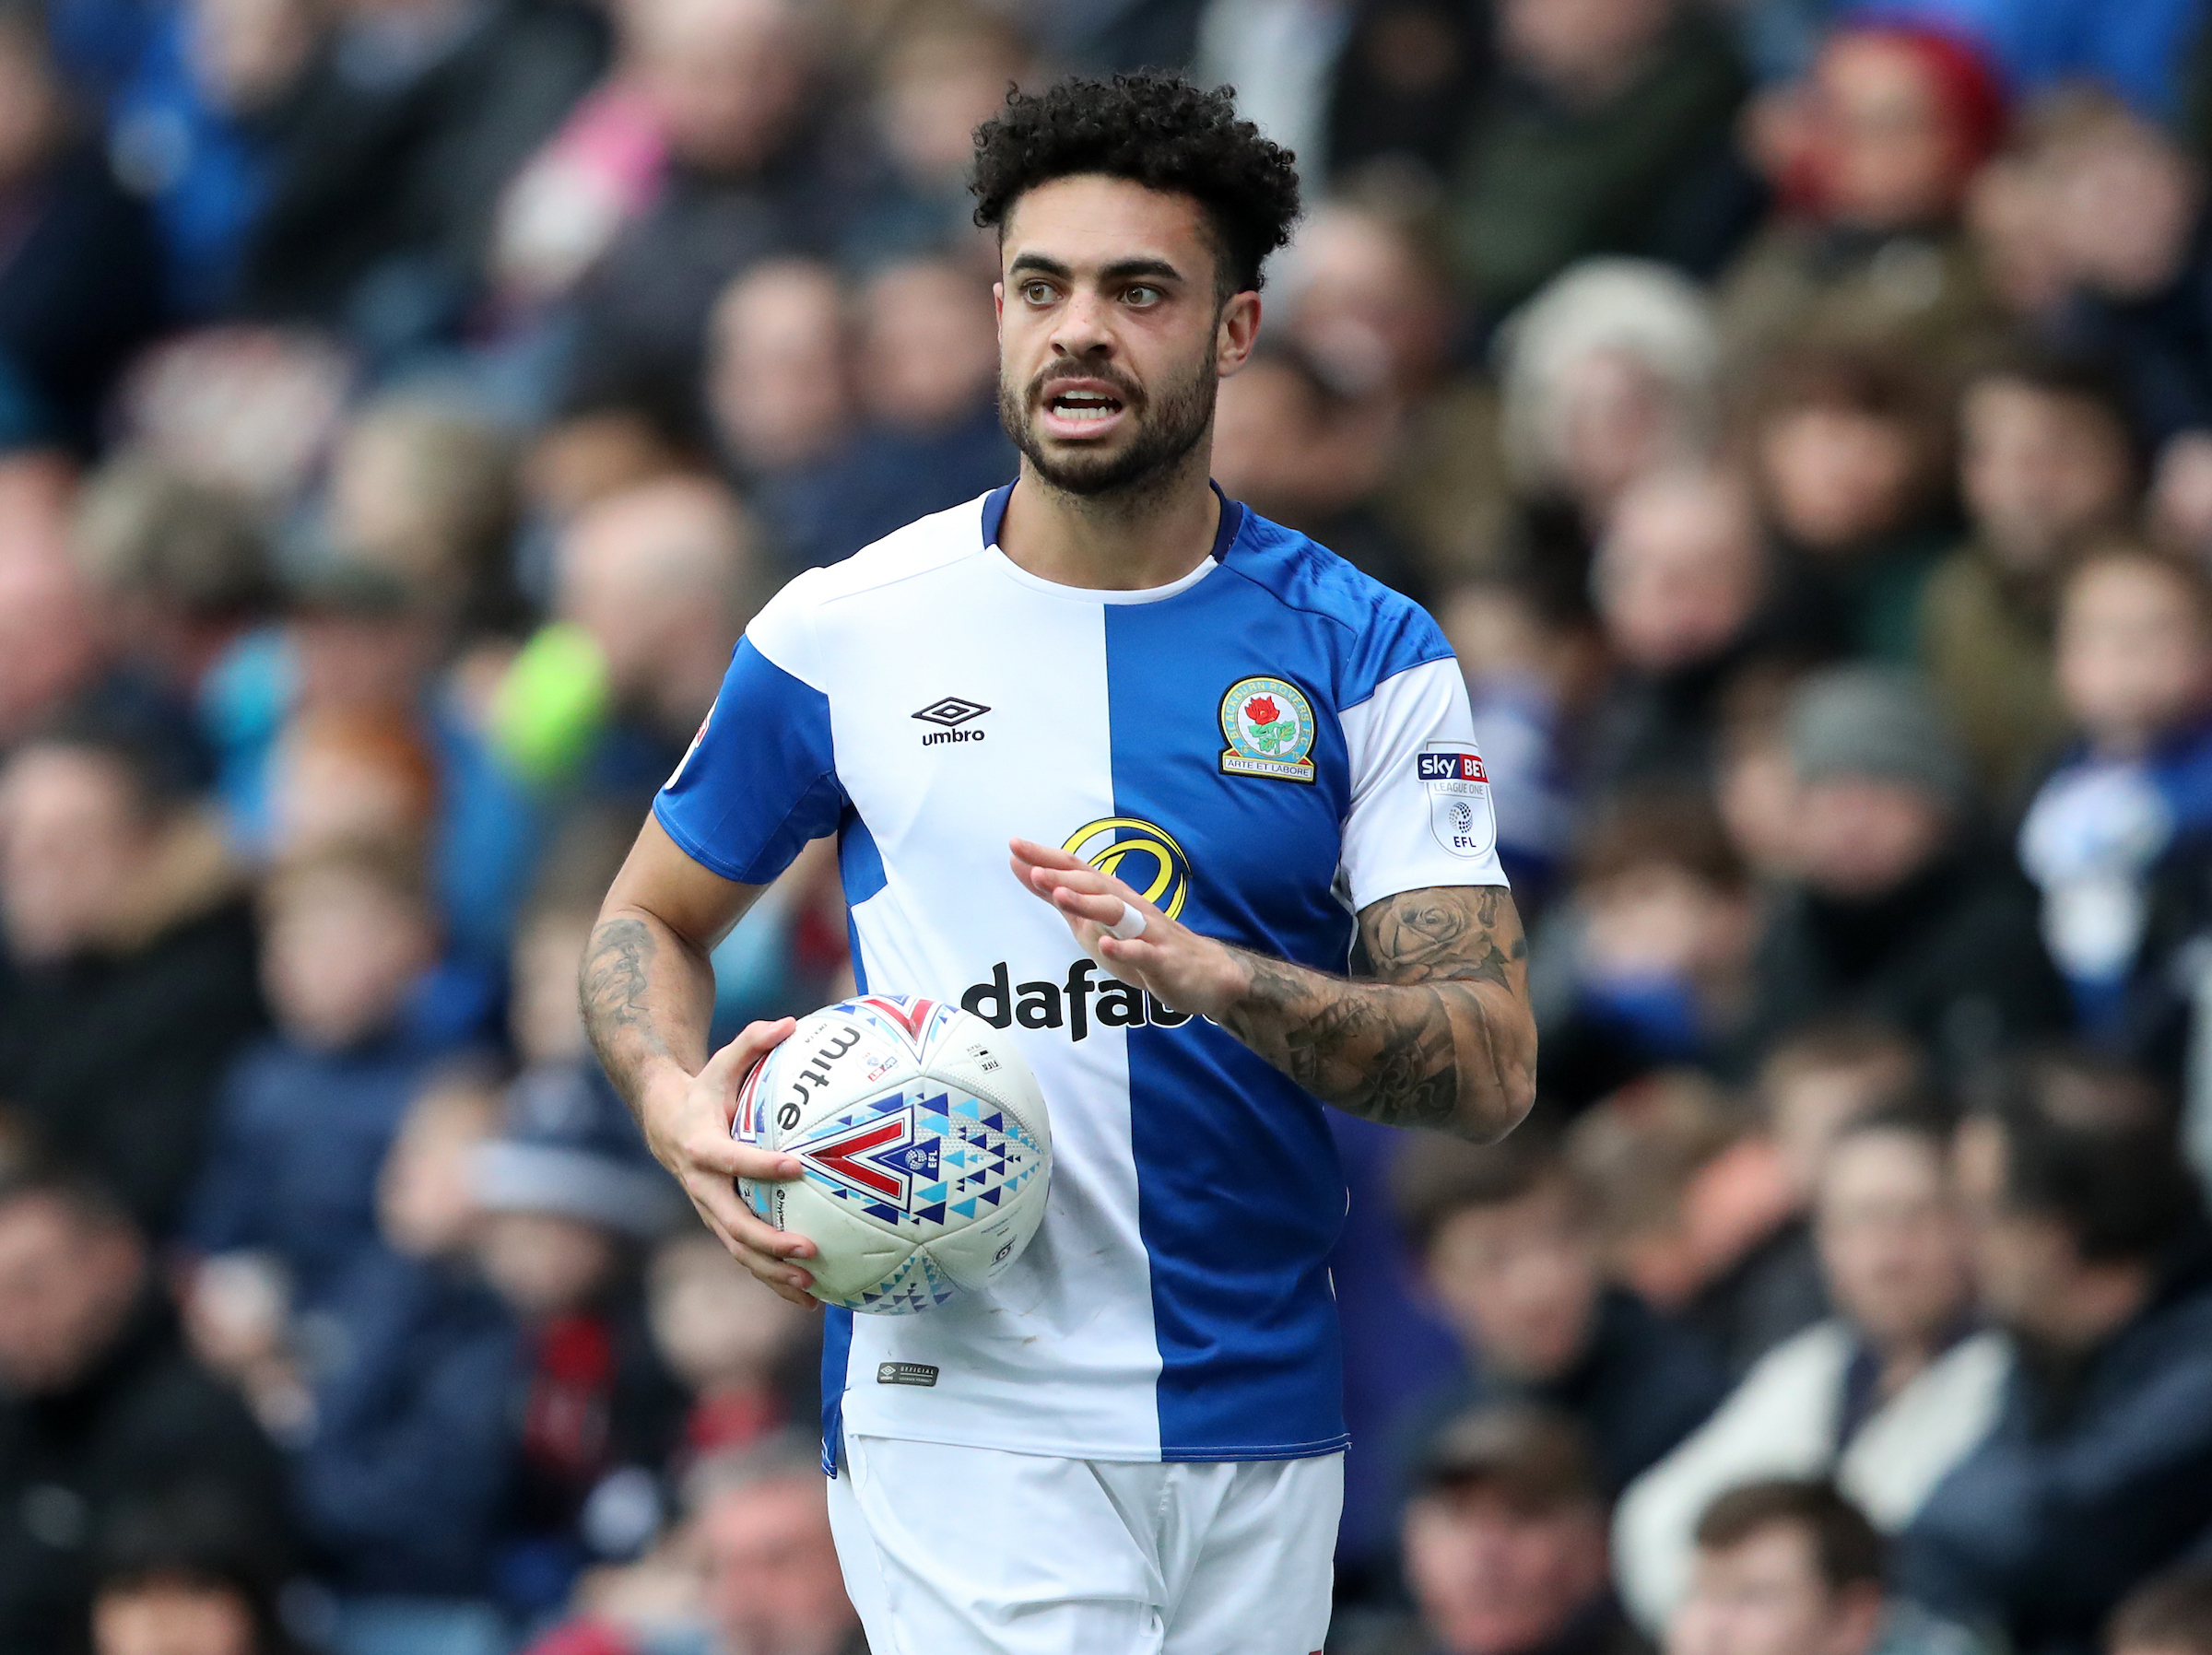 Derrick Williams has been a virtual ever present for Rovers